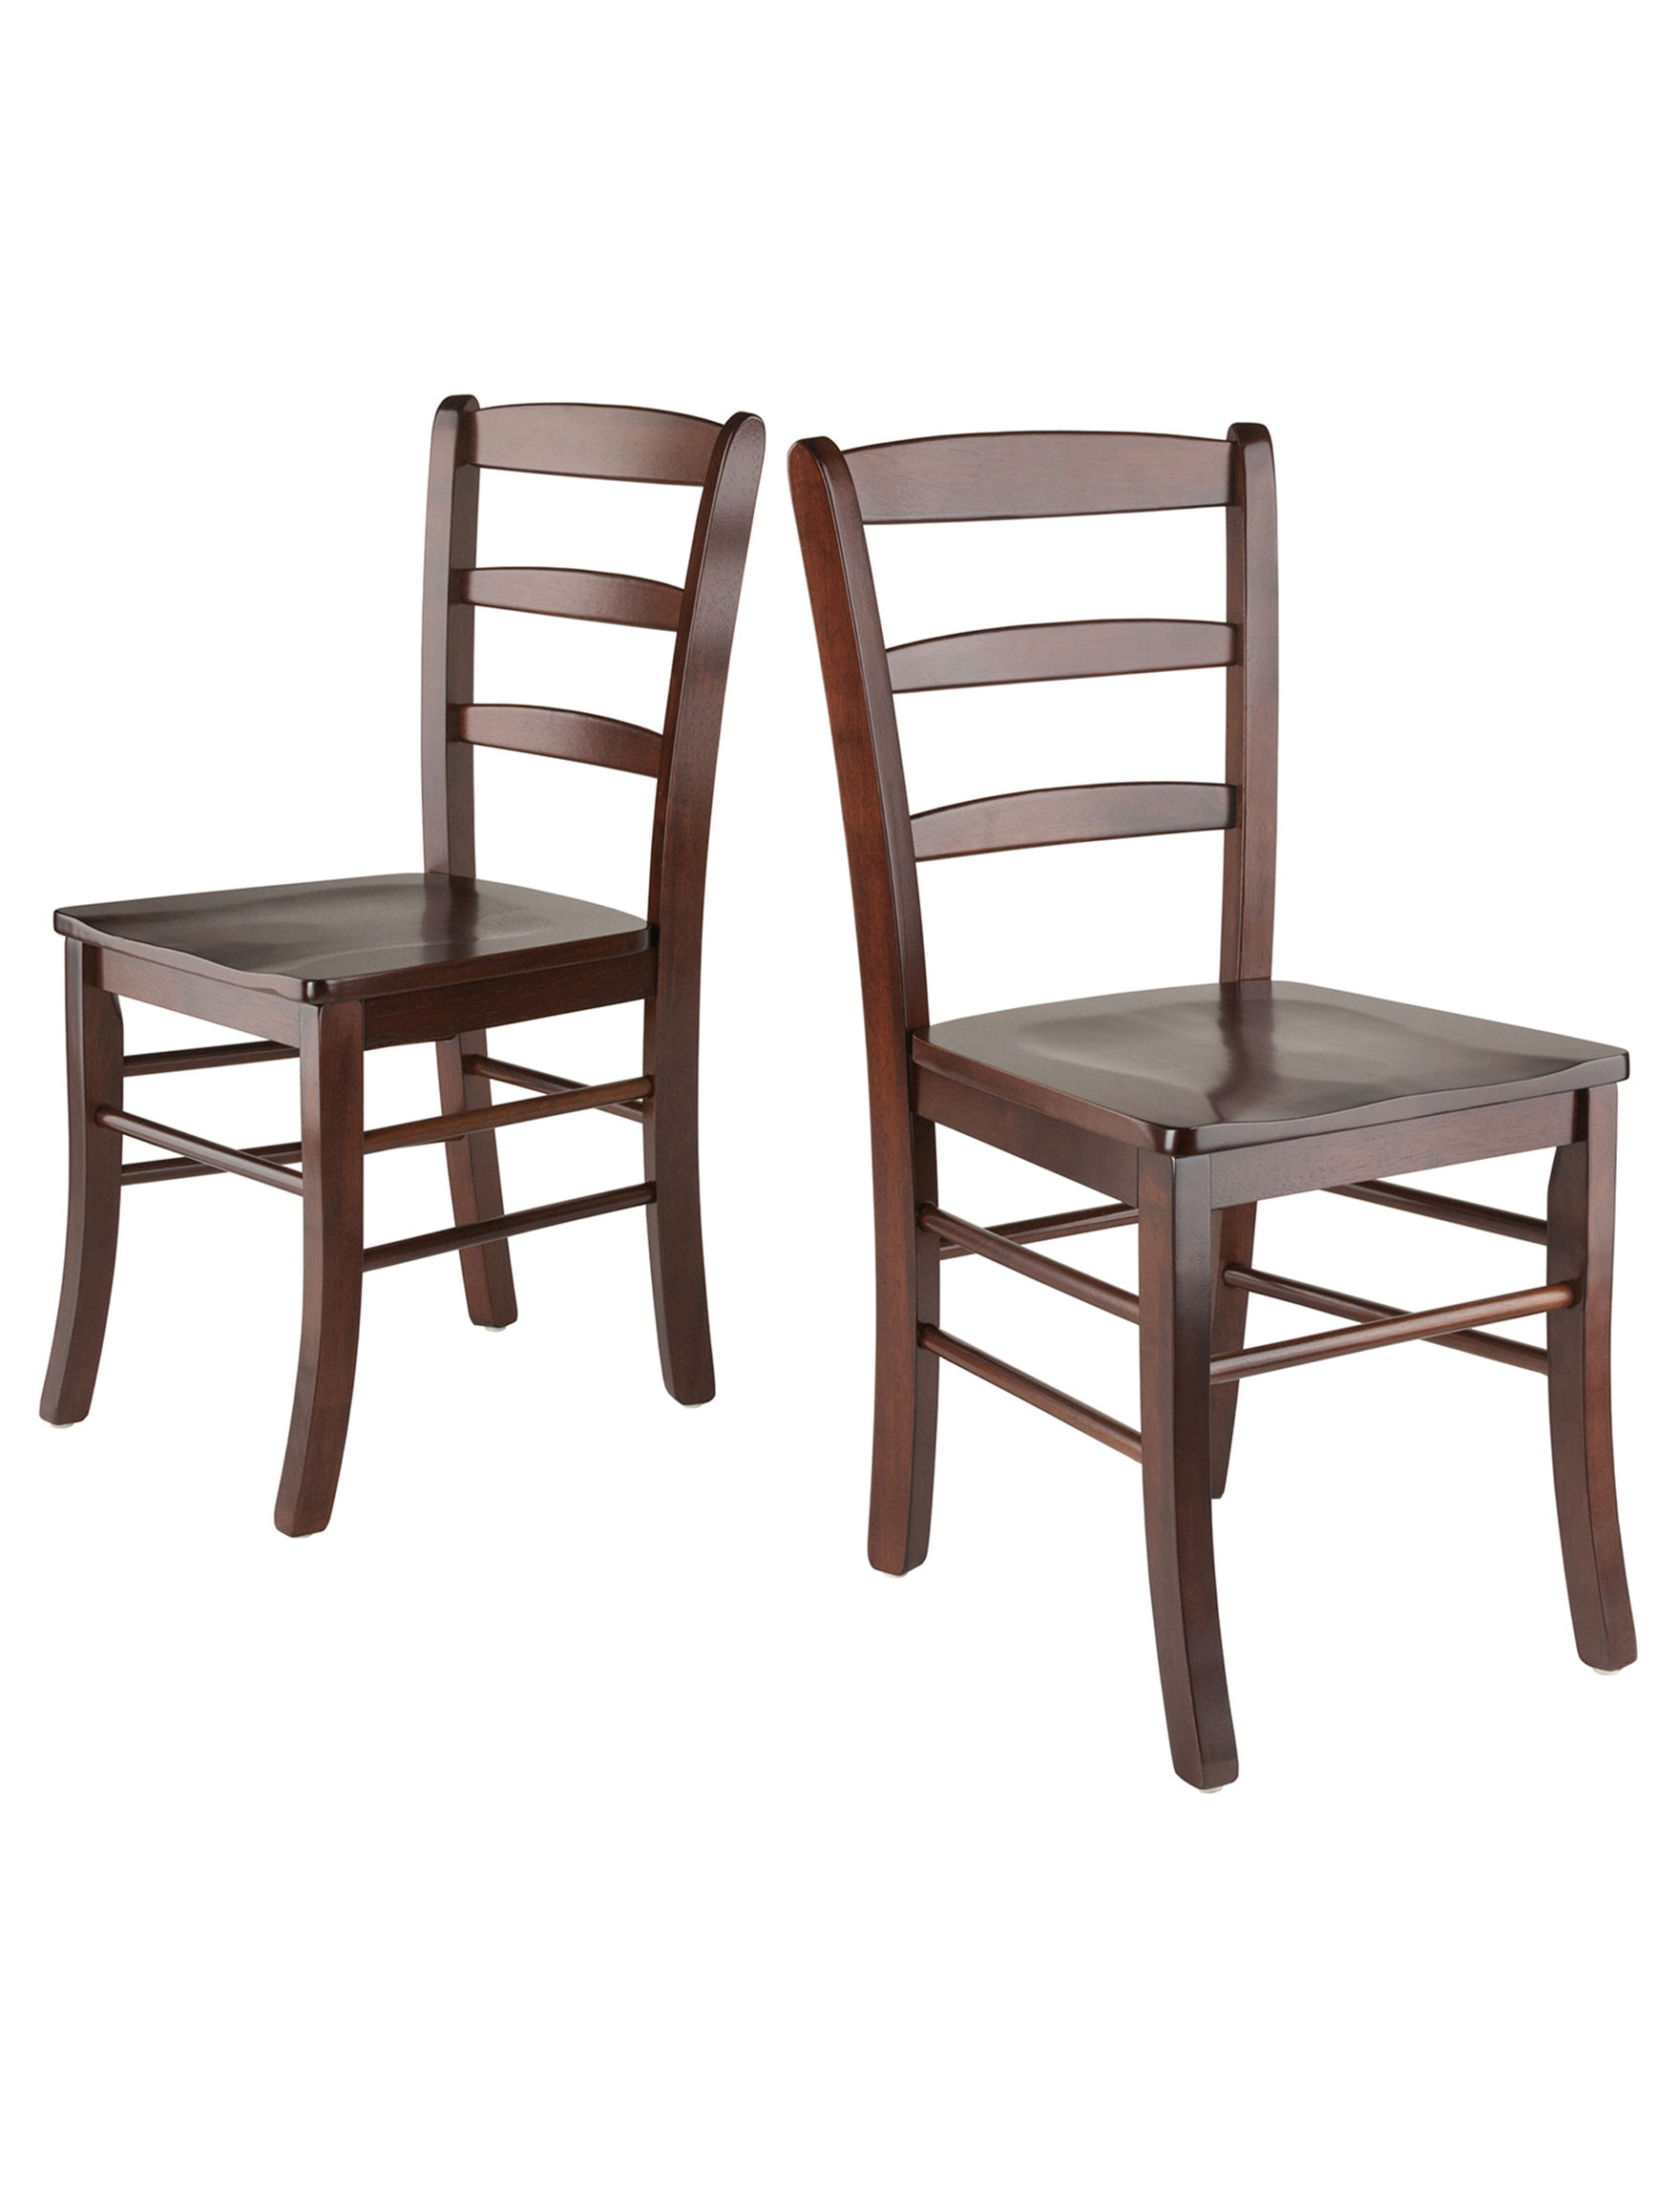 Winsome Brown Dining Chairs Kitchen & Dining Furniture